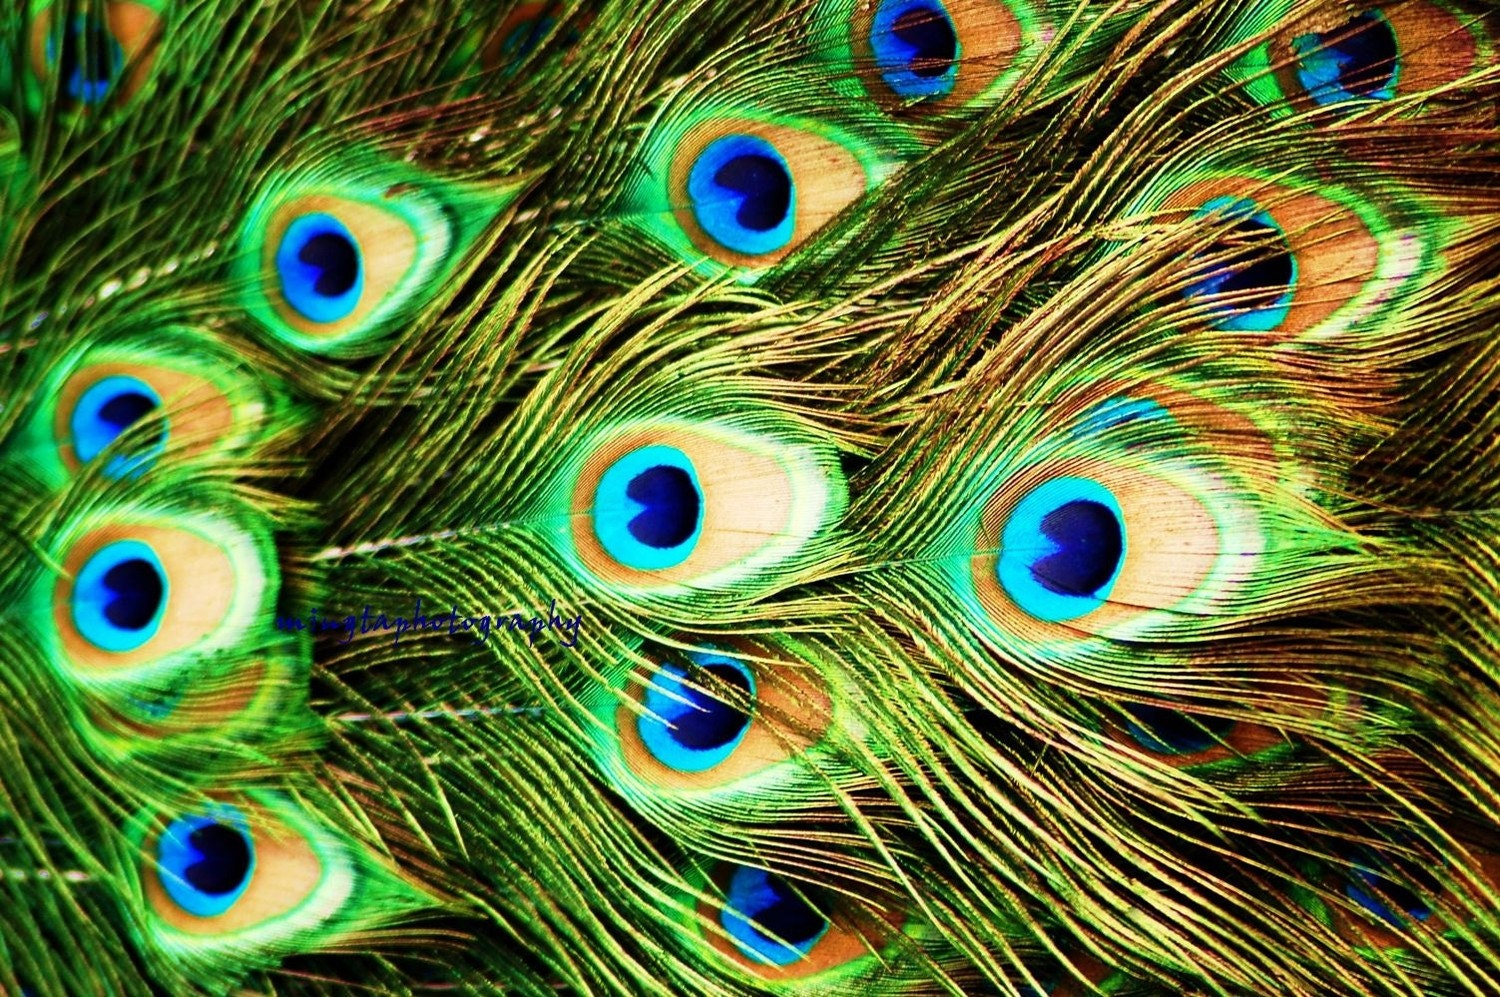 Face Eyes Photography Nature Peacocks Birds Colorful: Peacock Eyes Turquoise Colorful Feathers For Her Bird Love